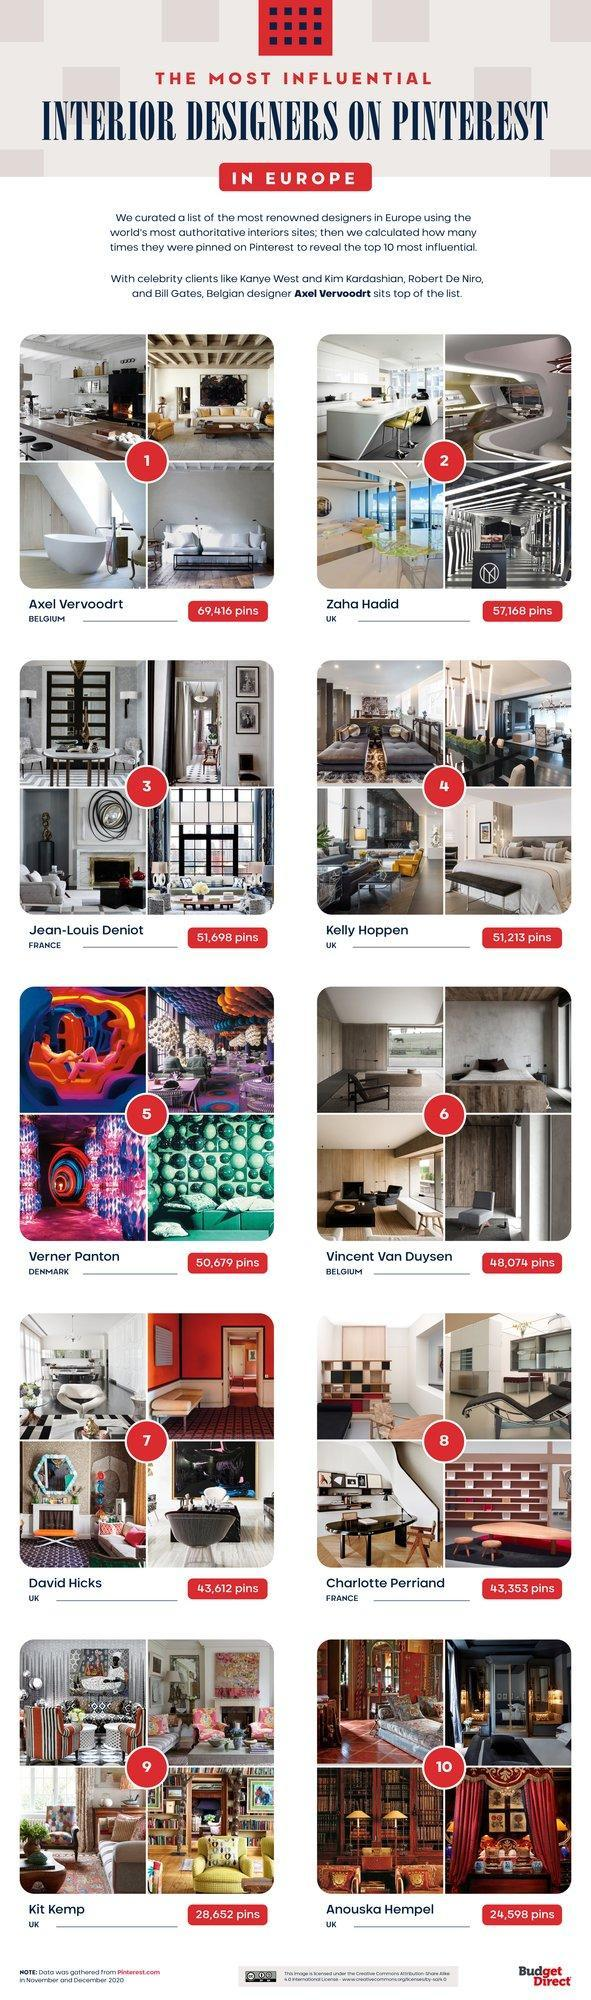 Budget Direct Home Insurance's Most Influential European Interior Designers on Pinterest